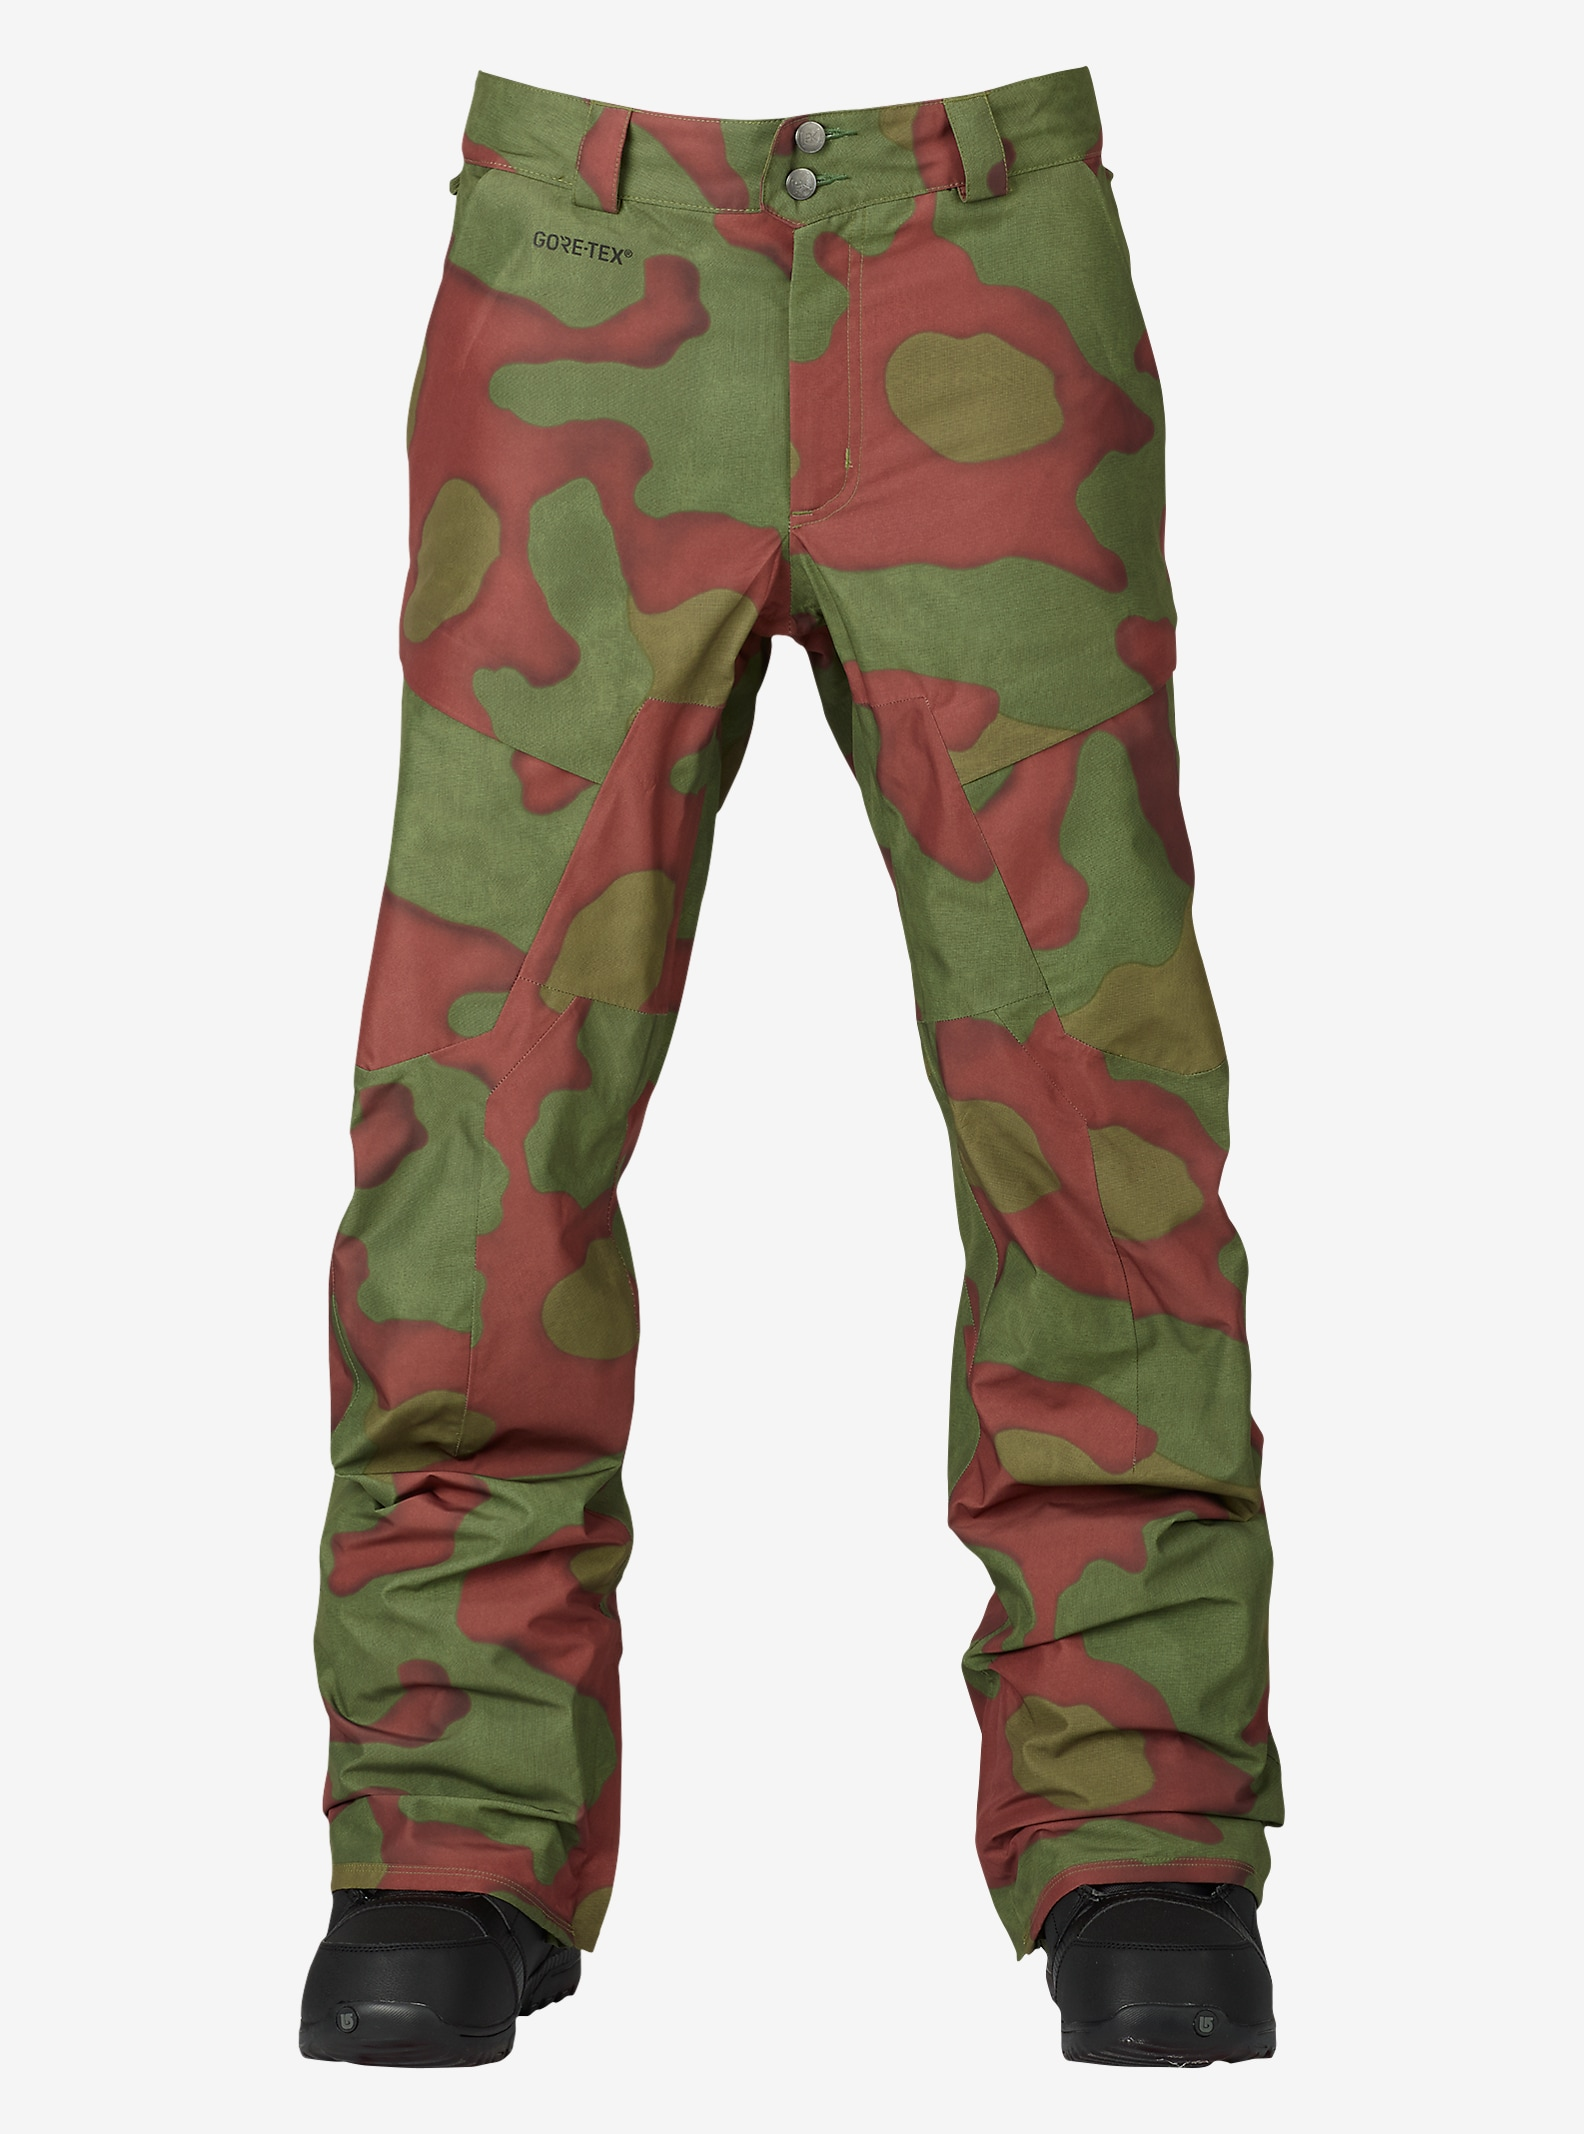 Burton [ak] 2L Swash Pant shown in Hombre Camo